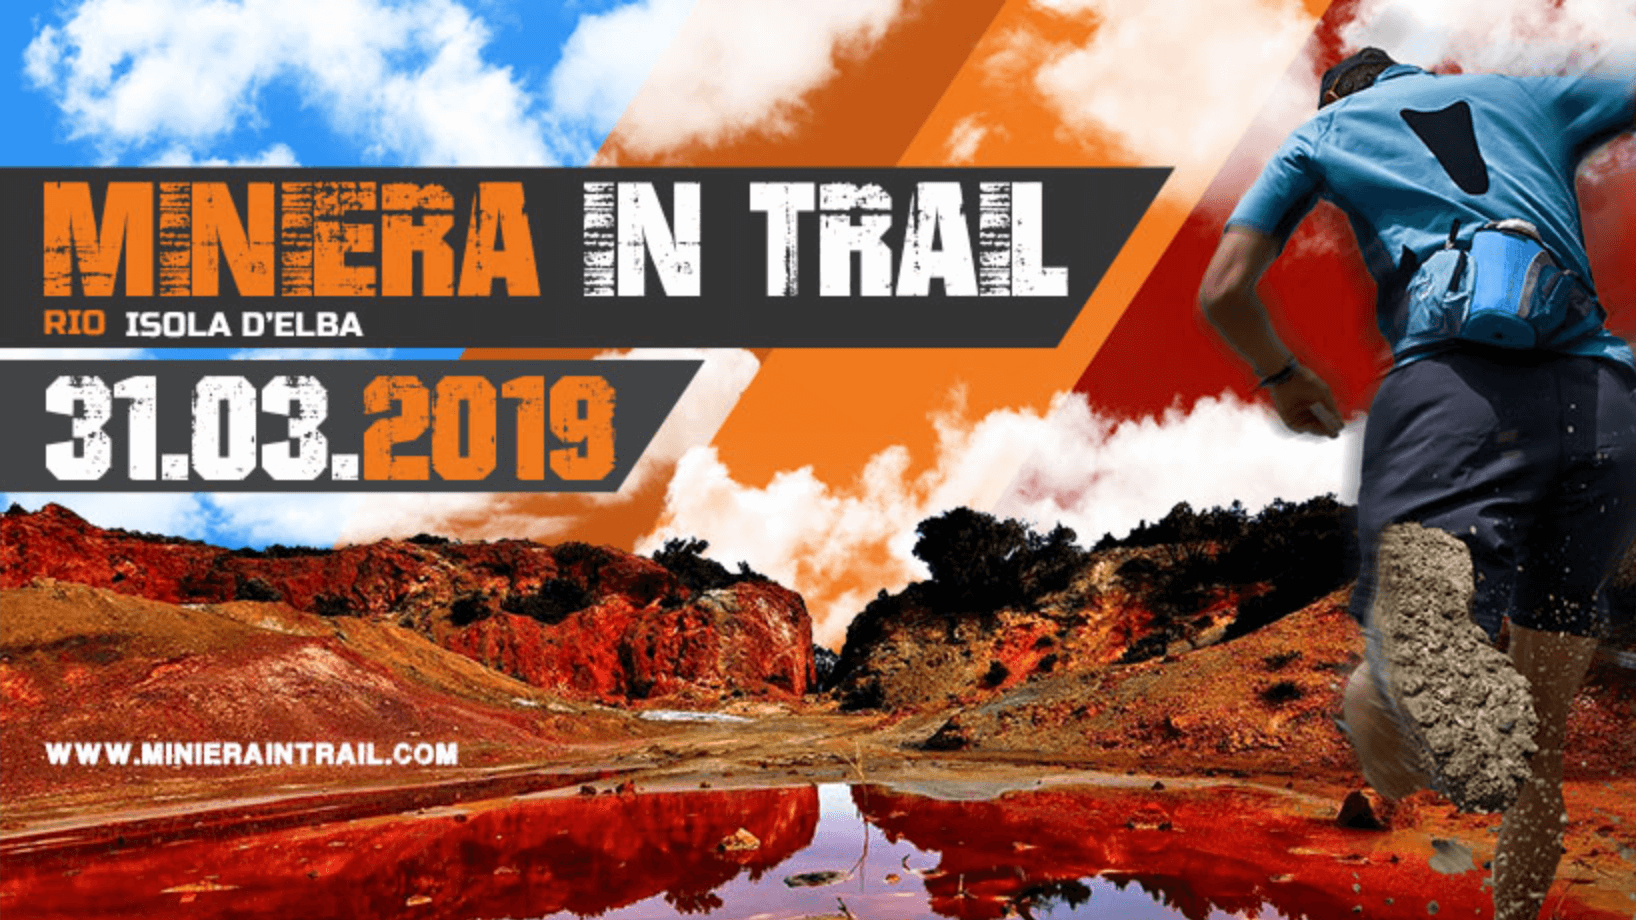 Miniera in trail